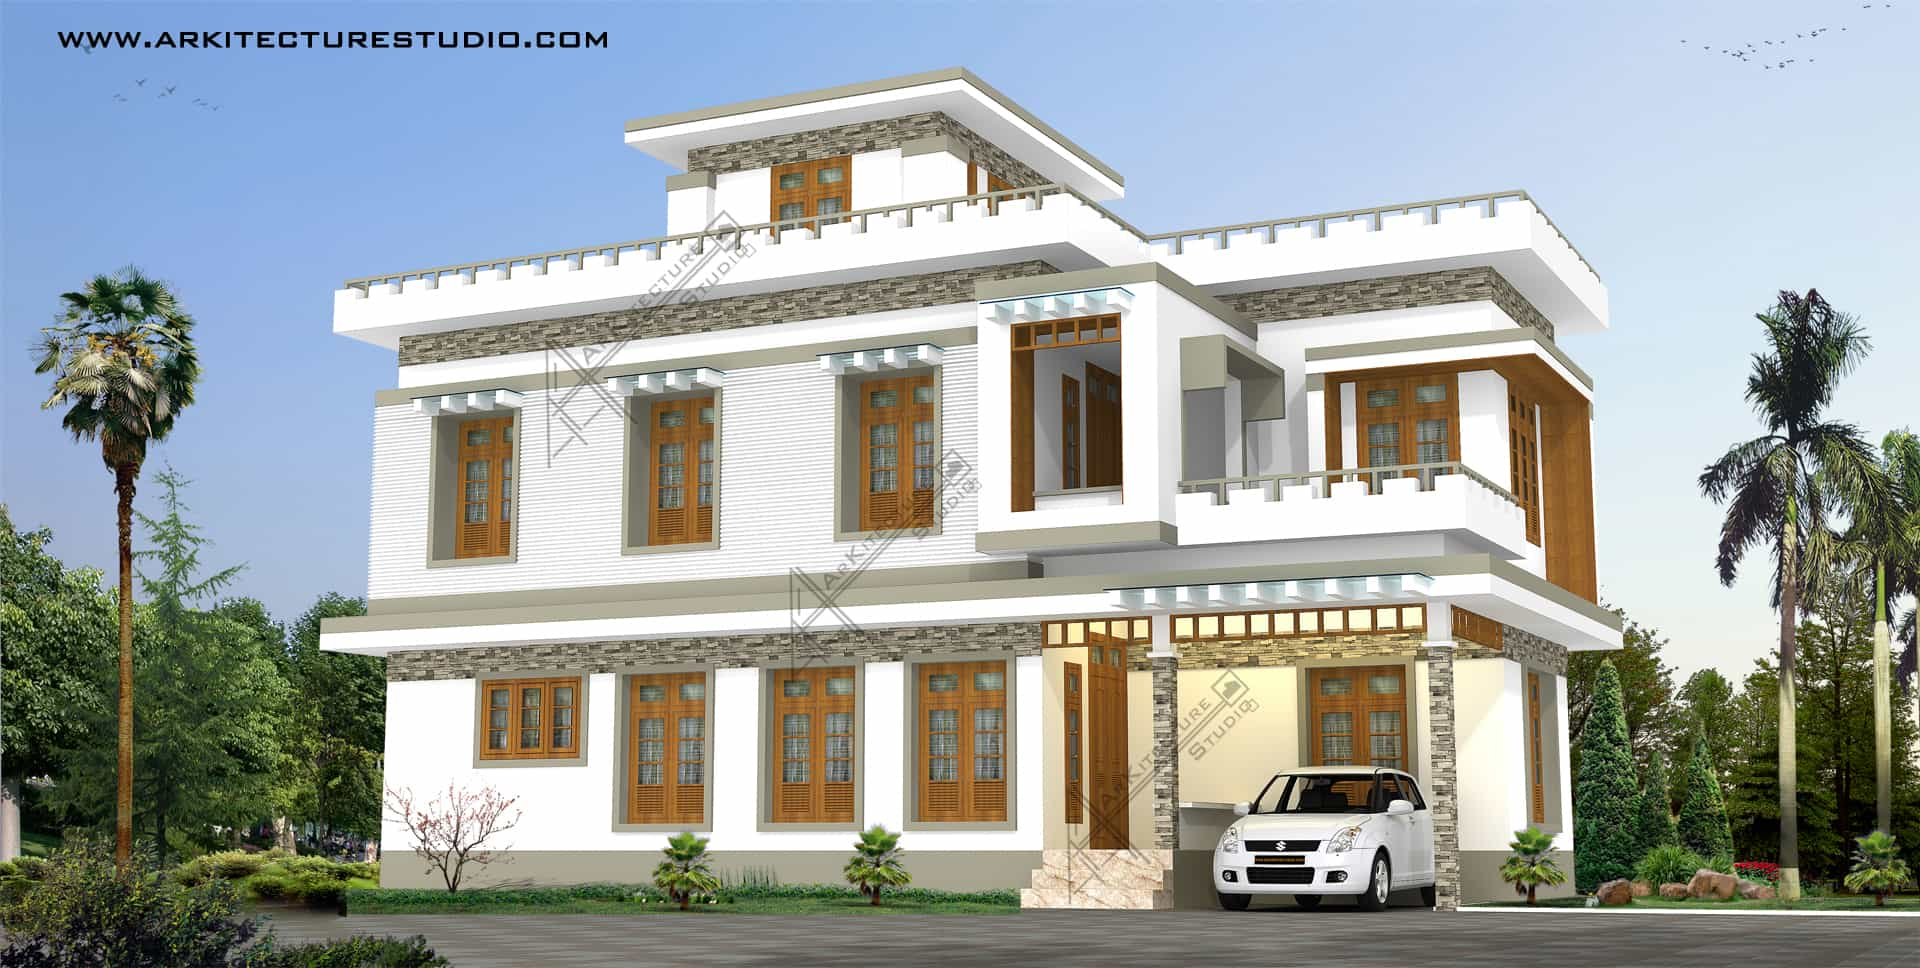 5 New Kerala Home Designs For 2016 U2013 Elegant U0026 Beautiful